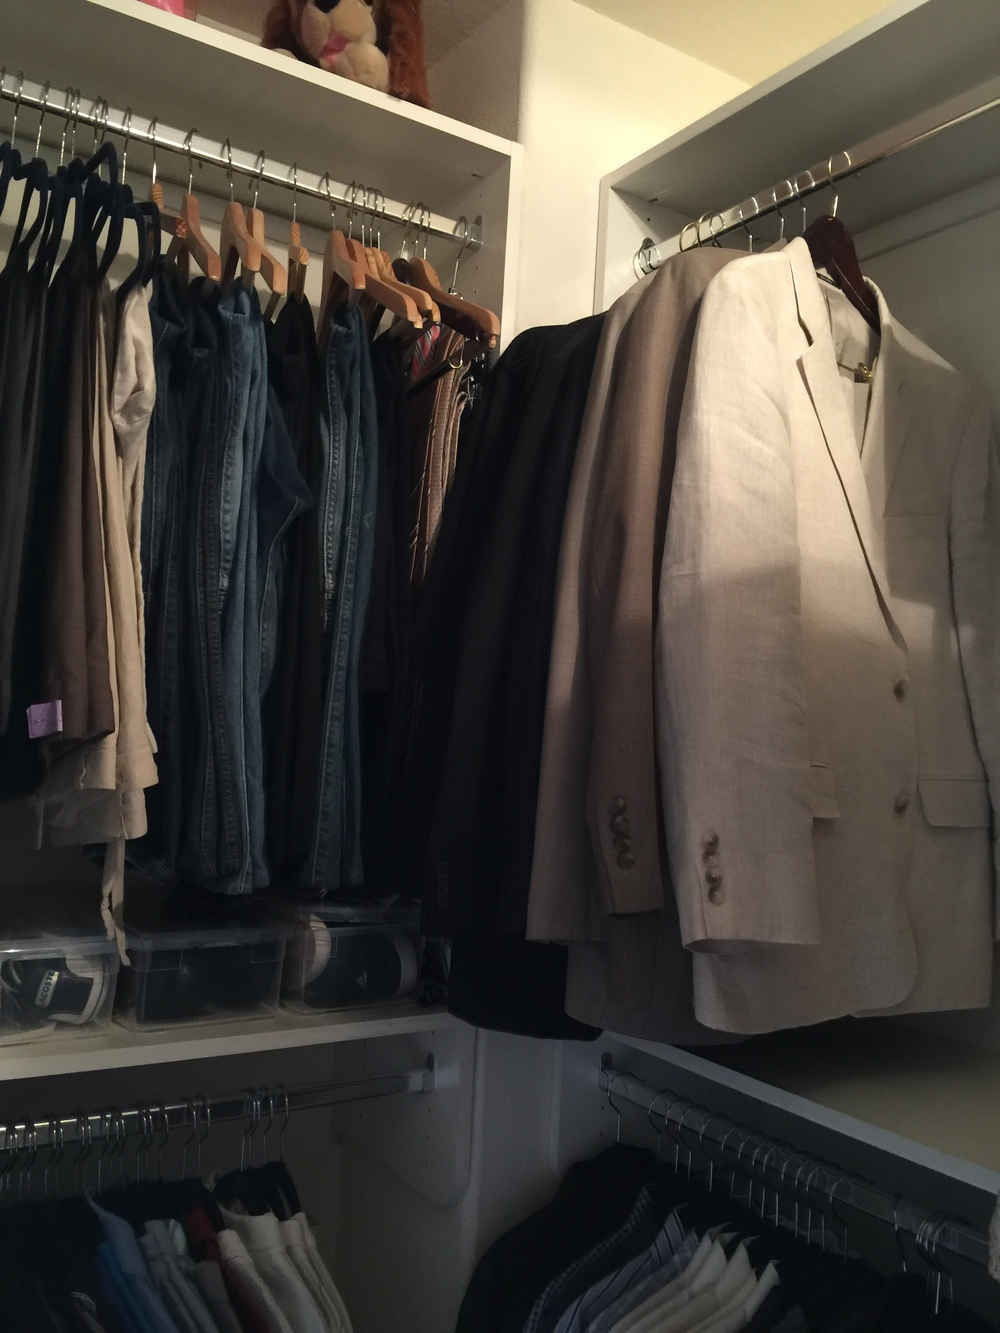 organized coats and jeans